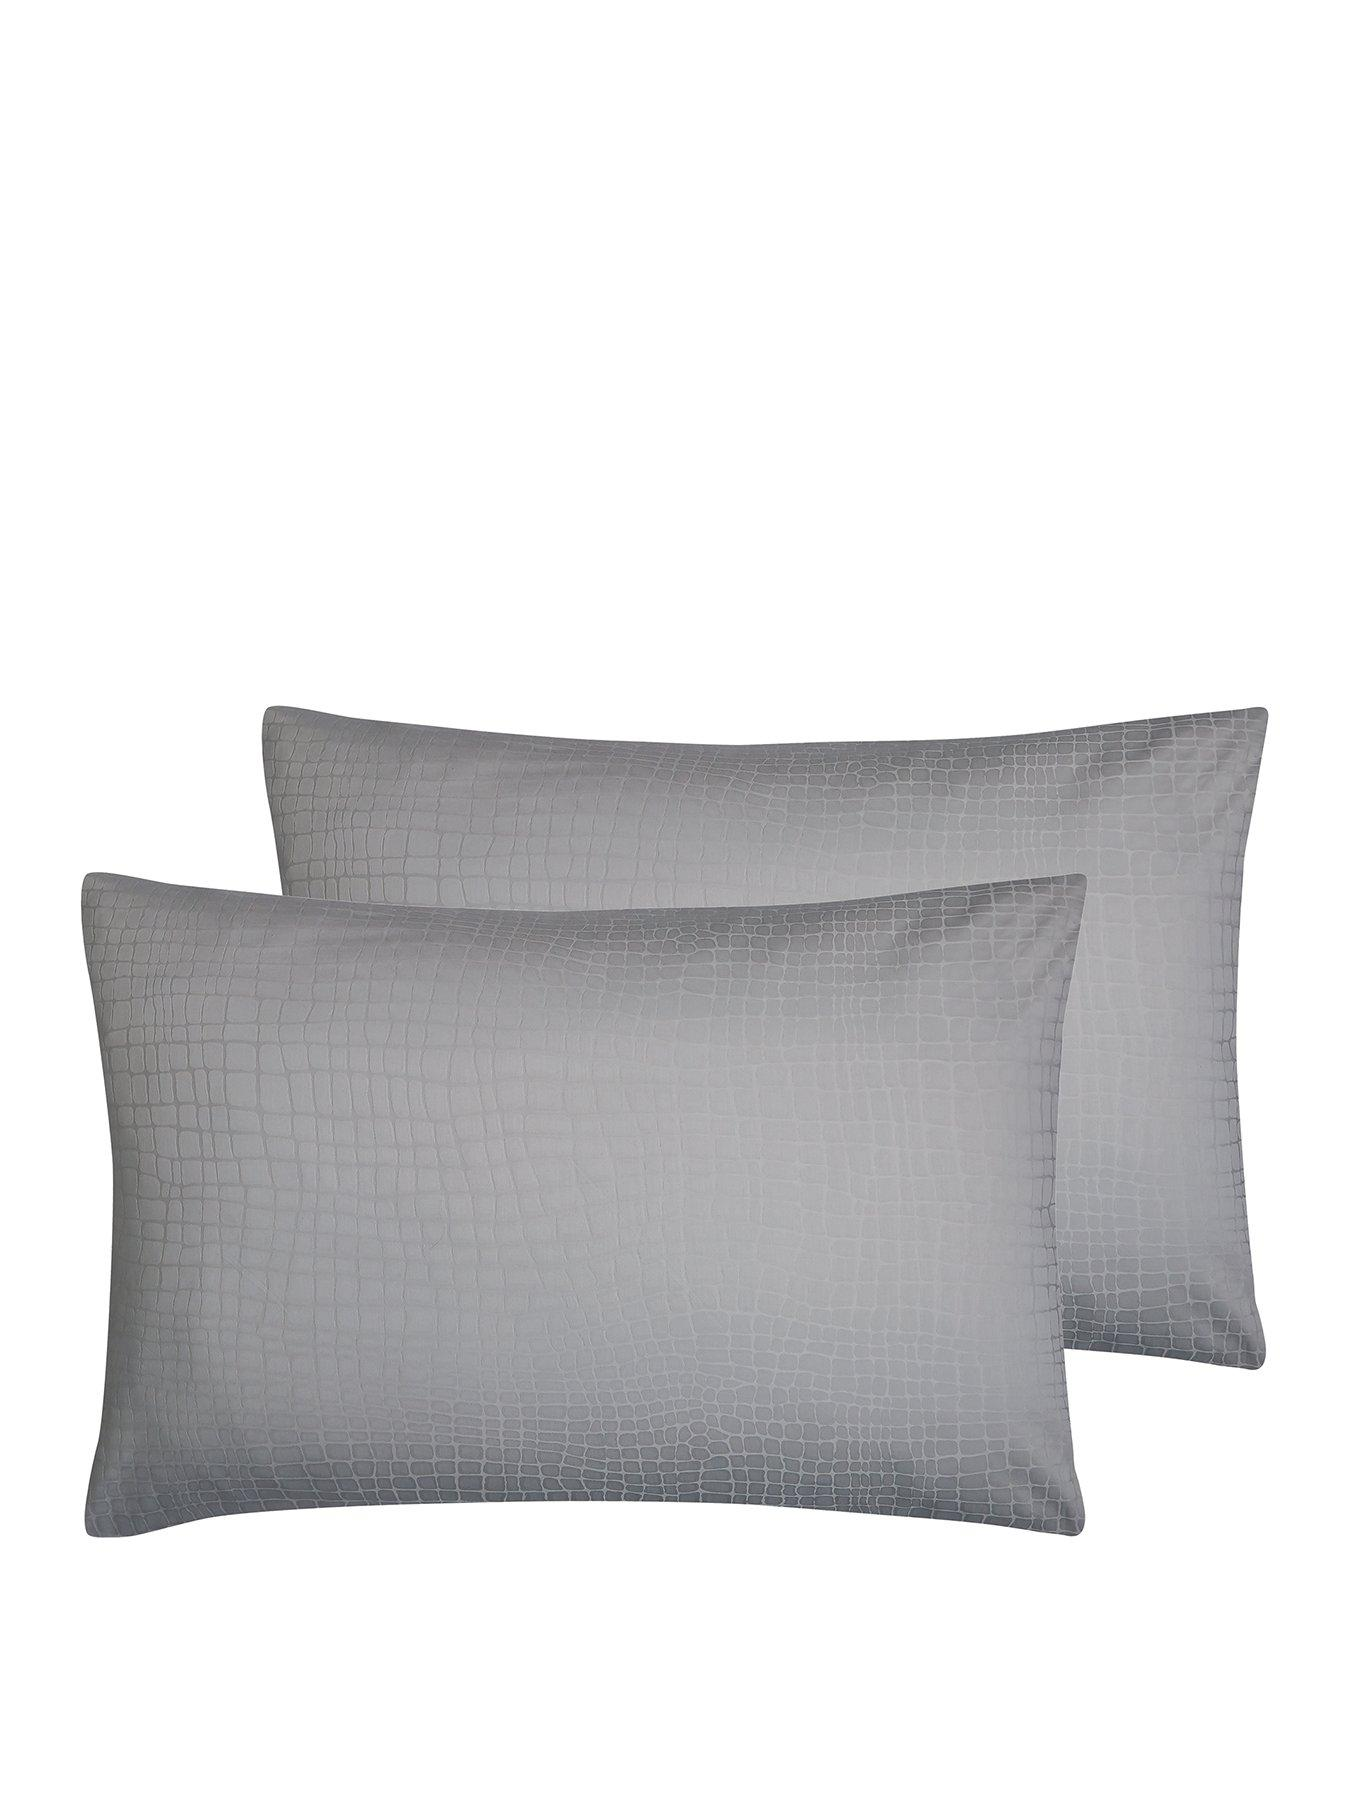 Hotel Collection Snakeskin 300 Thread Count Standard Pillowcases (Pair)